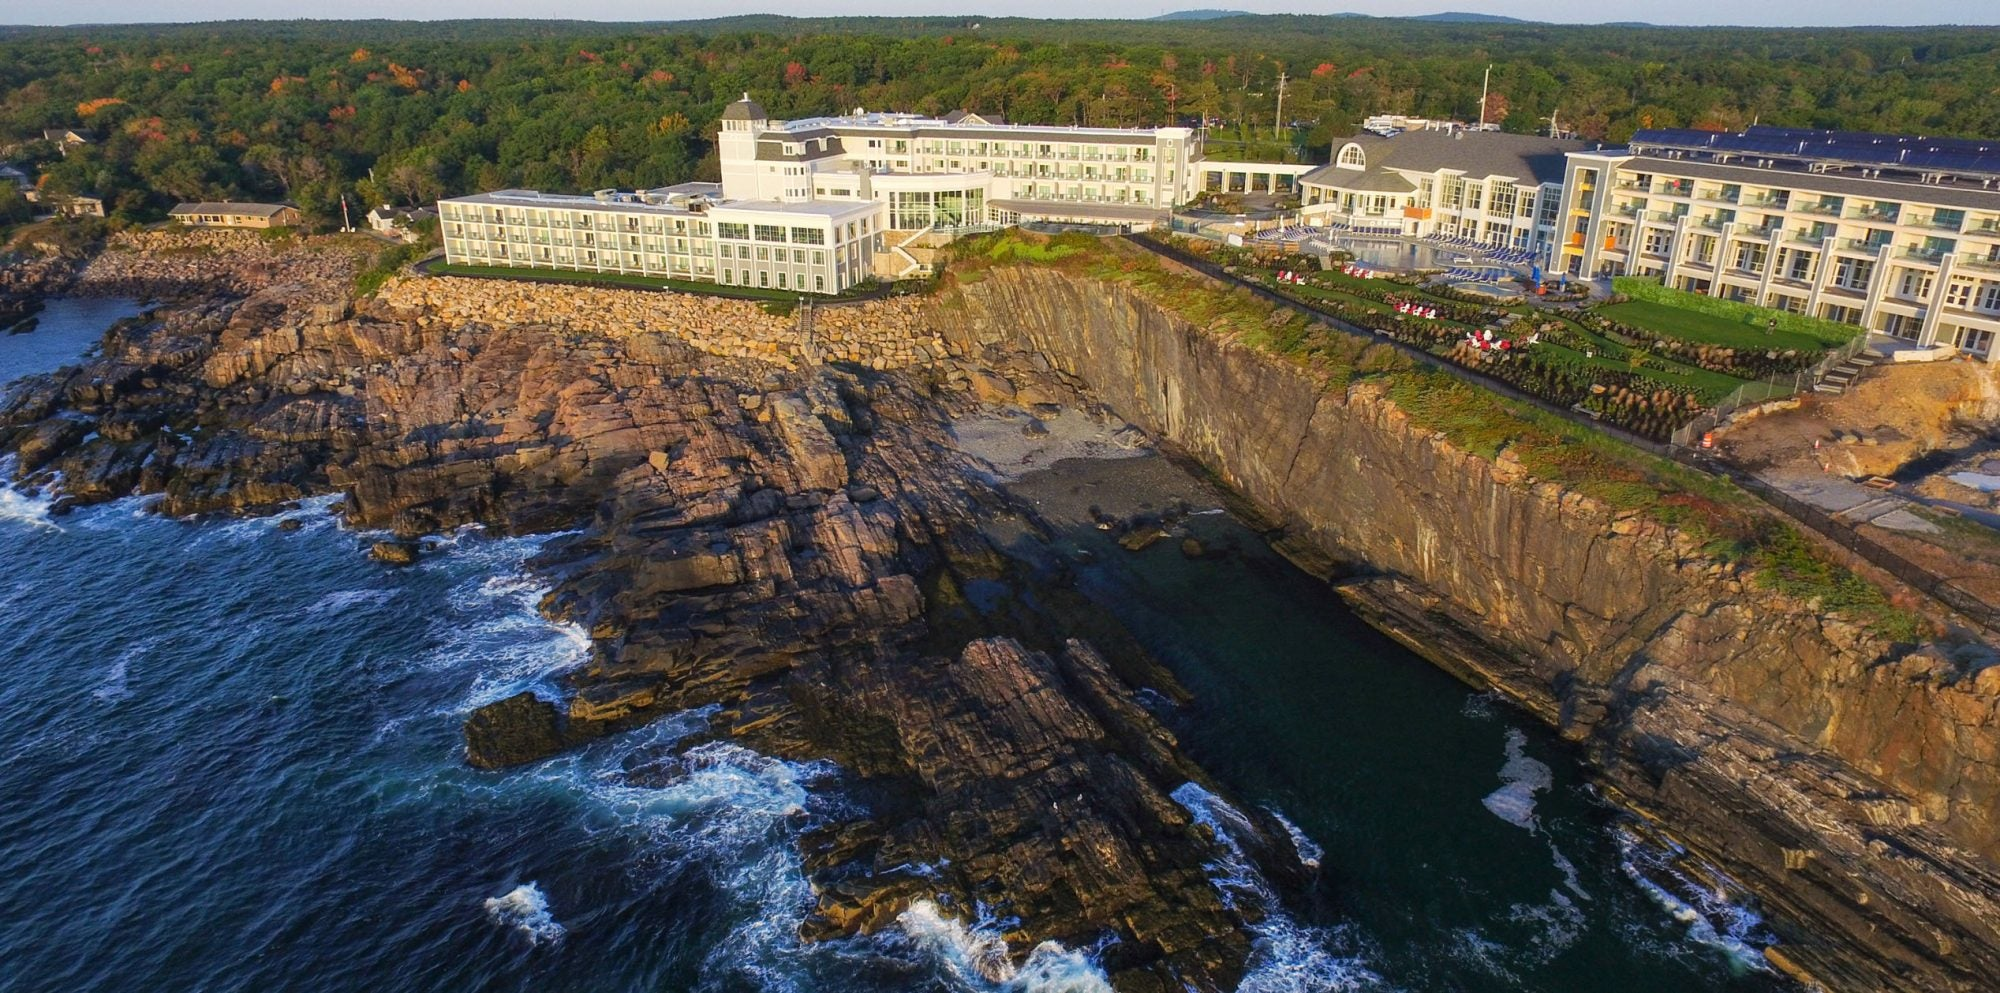 Hotel Promo: Get a 4th Night Free With ANY American Express Card at Amazing US Hotels